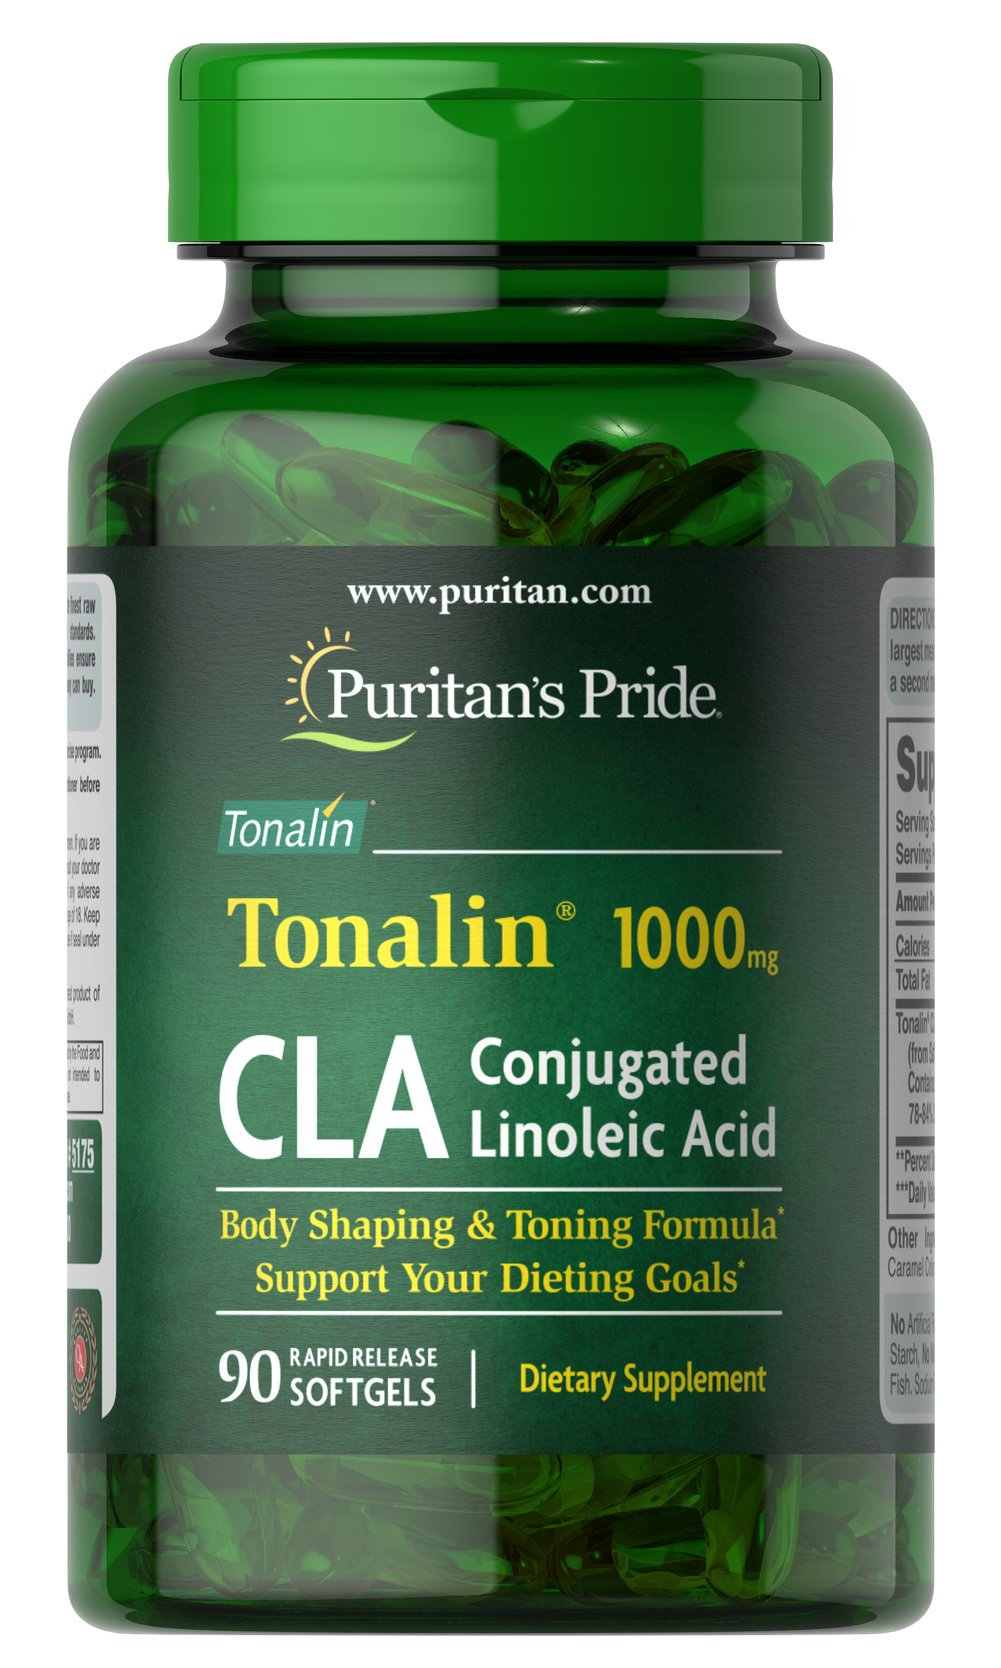 CLA 1000 mg Tonalin® <p>CLA (Conjugated Linoleic Acid) supports a healthy body composition**</p><p>Derived from Safflower Oil, CLA supports your dieting goals**</p><p>Rapid Release softgels are formulated for quick release into your system</p><p>Use with a reduced calorie diet and daily exercise program</p> 90 Softgels 1000 mg $30.99